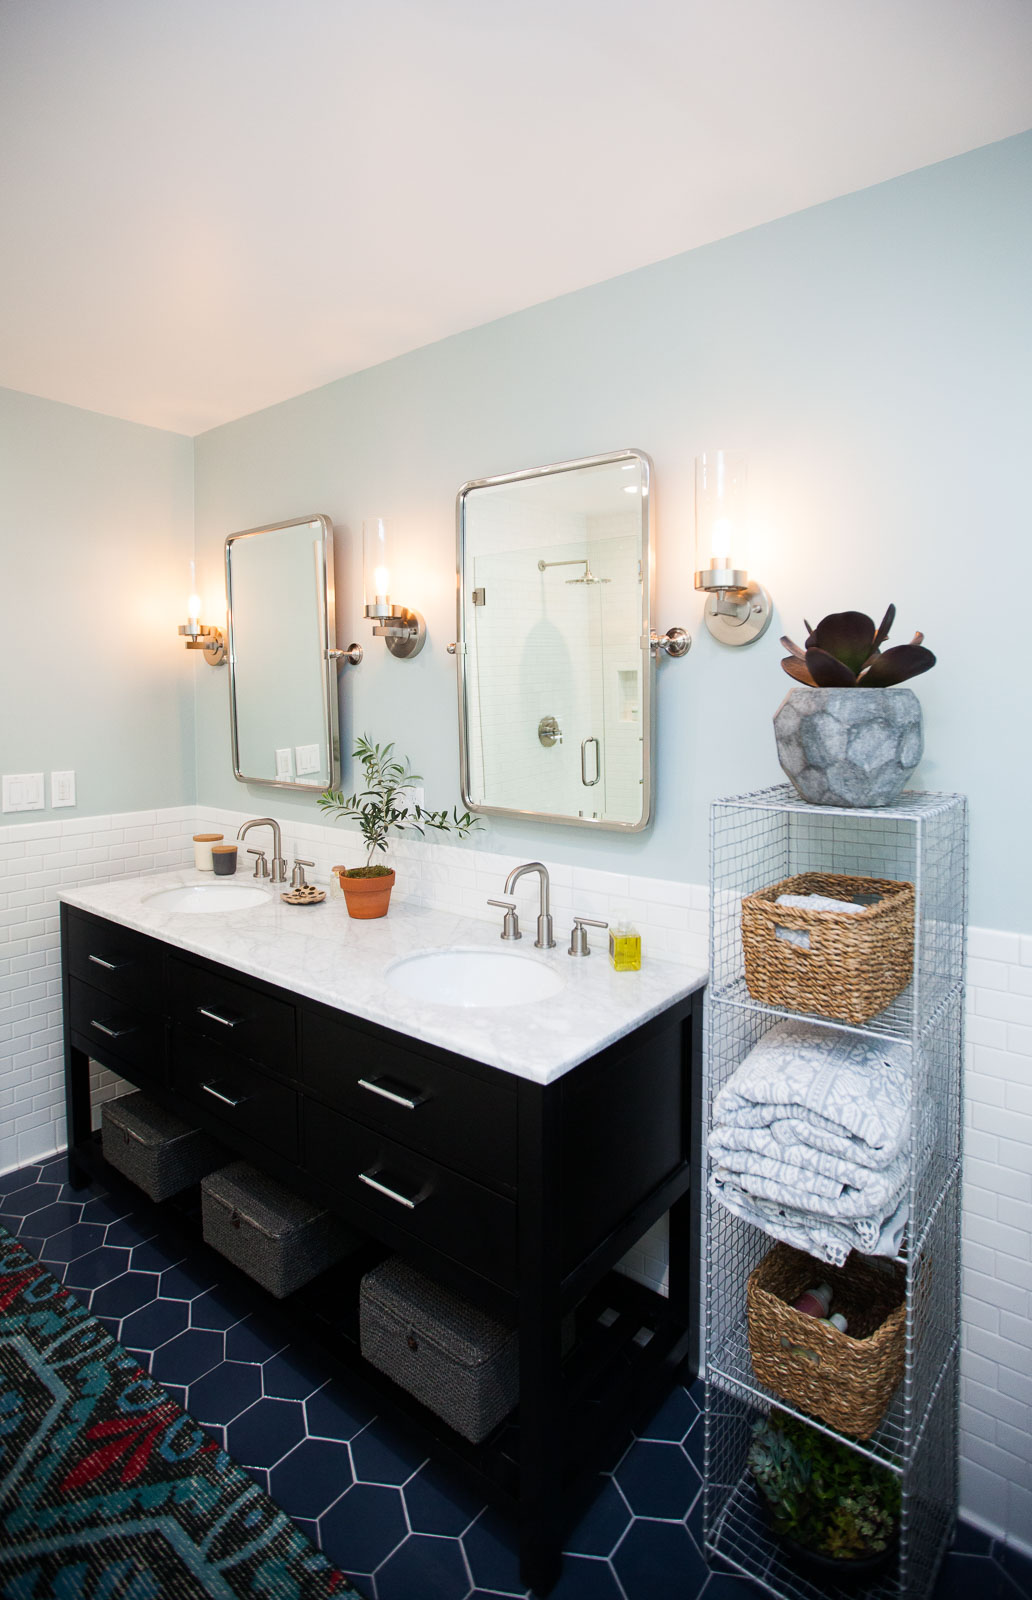 Rejuvenation Lighting Fixtures Master Bathroom Renovation // Before + After - The